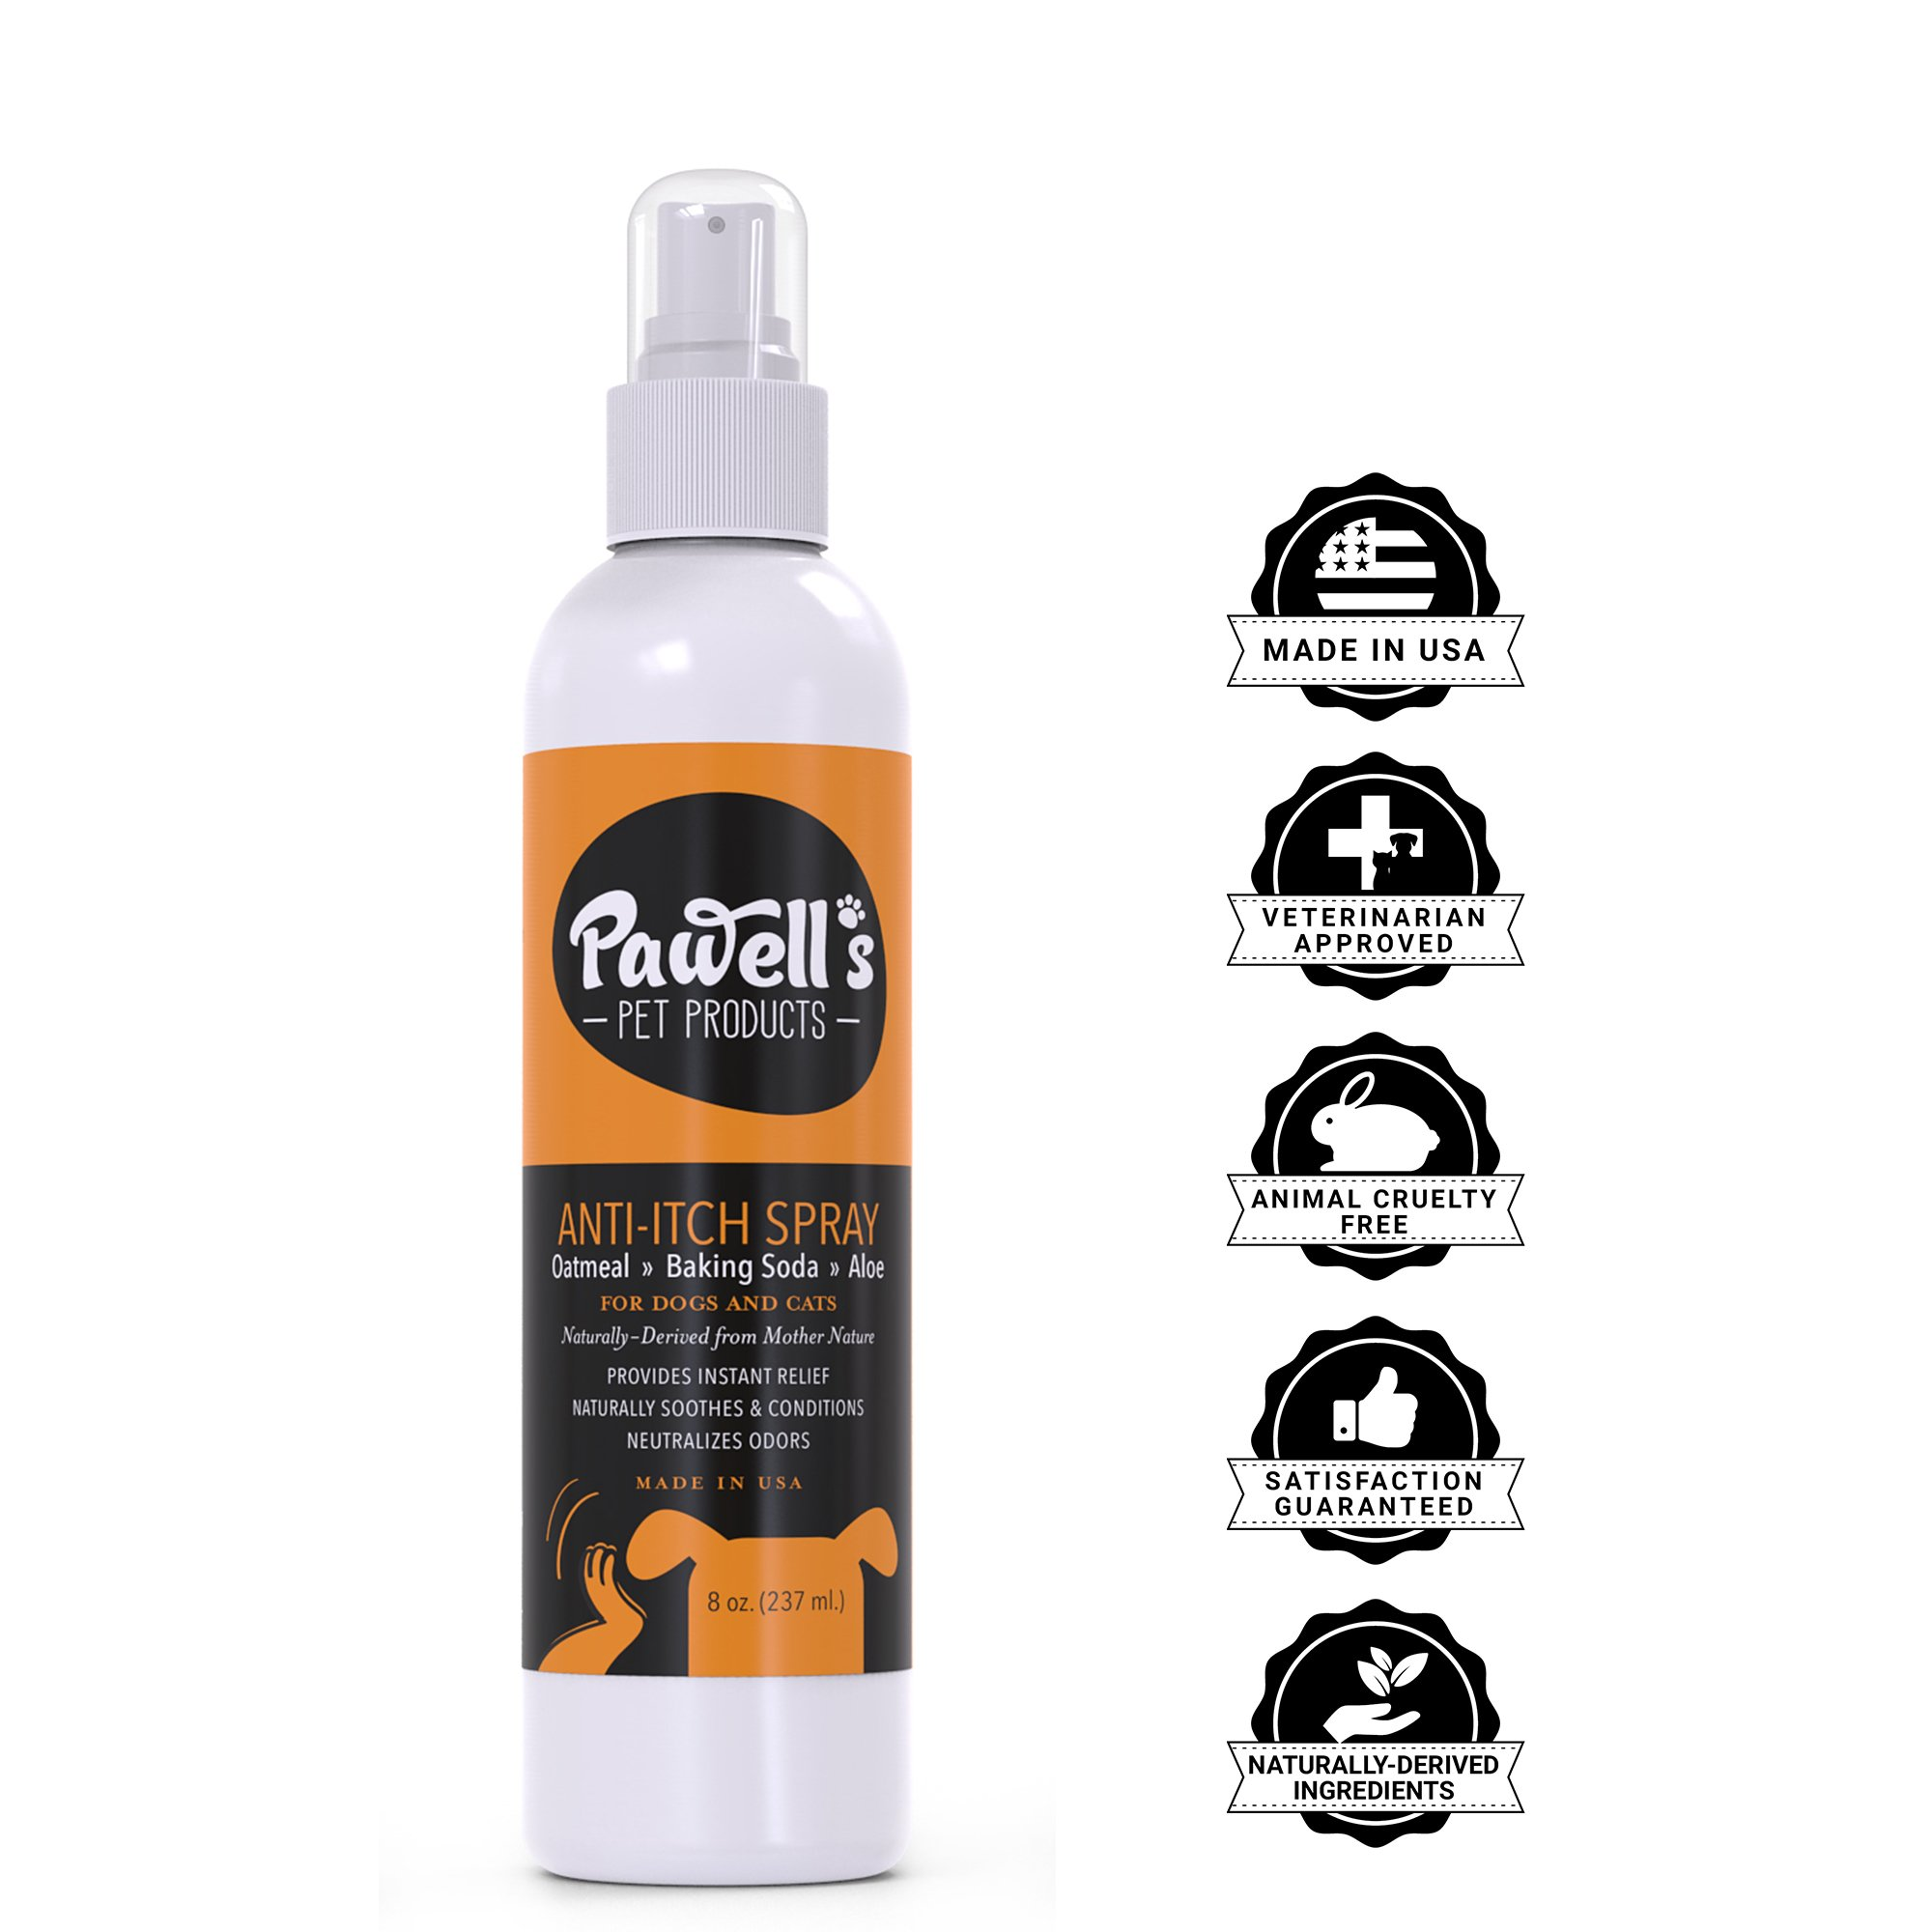 NEW Natural Oatmeal Pet, Cat & Dog Itch Spray | Safe Hypoallergenic Soothing Cat & Dog Anti Itch Spray for Dry, Itchy, Flea & Tick bites, hot spots, allergies| Cat & Dog Between Bath Spray